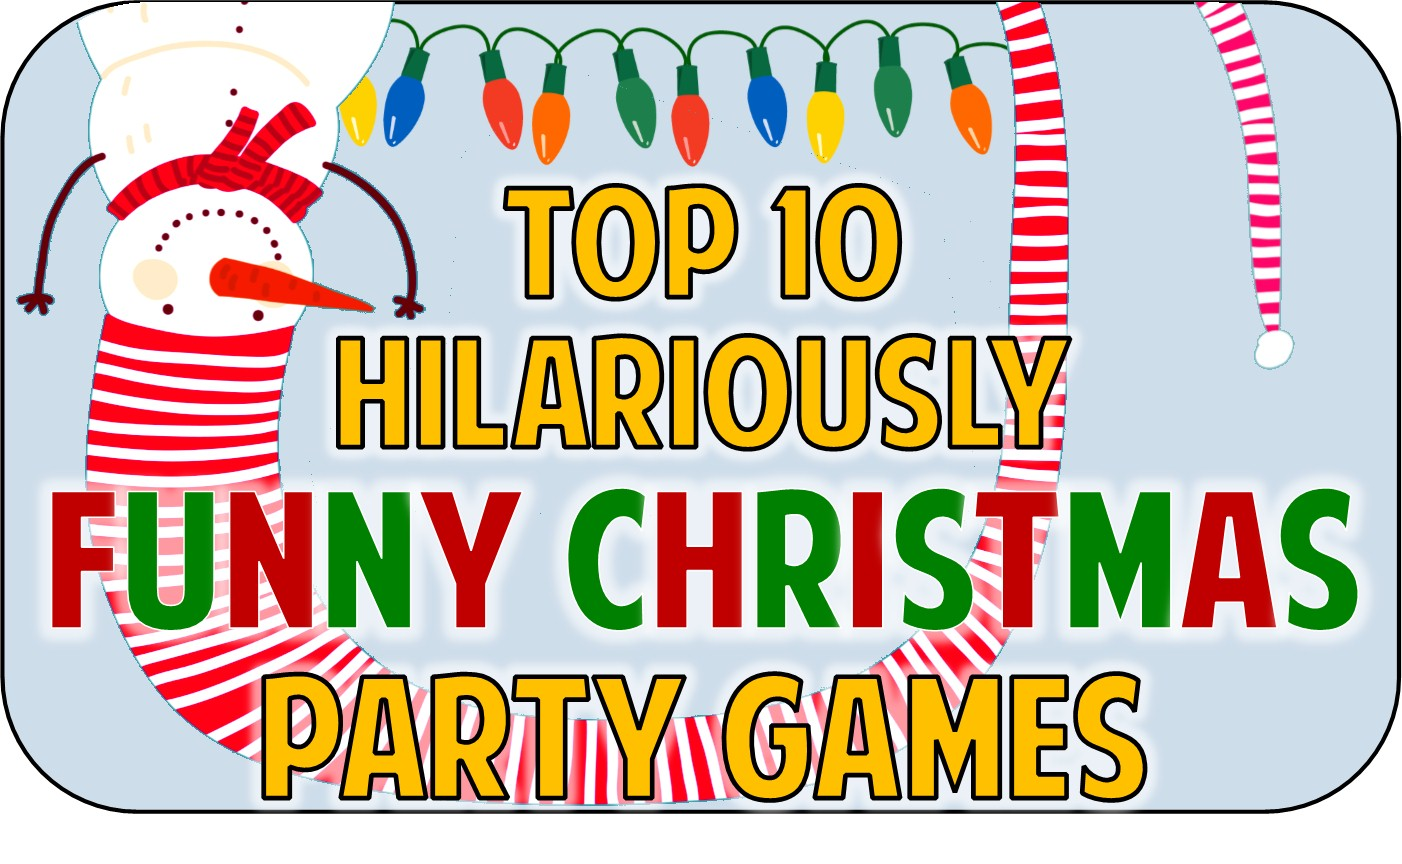 top 10 funny christmas party game ideas - Family Games To Play At Christmas